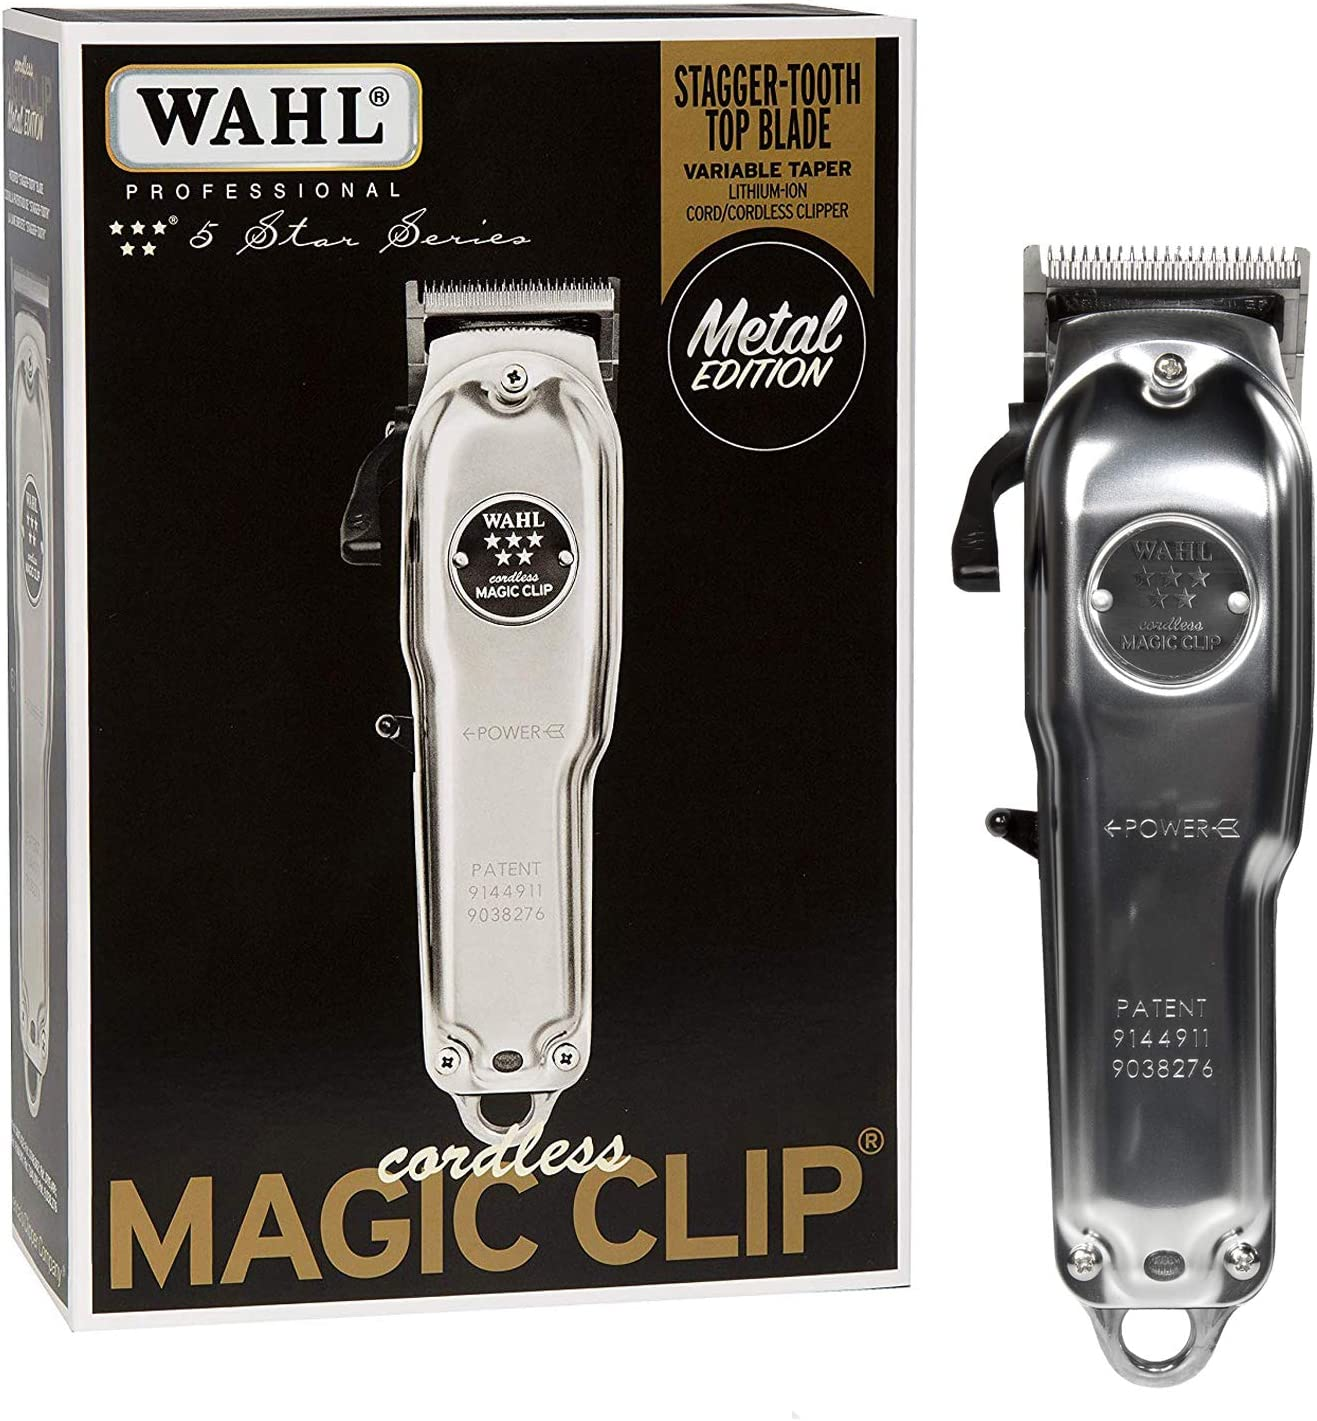 Wahl Magic Clip Metal Edition #8509 Professional 5-Star Cordless - Great for Barbers & Stylists - 100 Years of Tradition: Amazon.es: Salud y cuidado personal